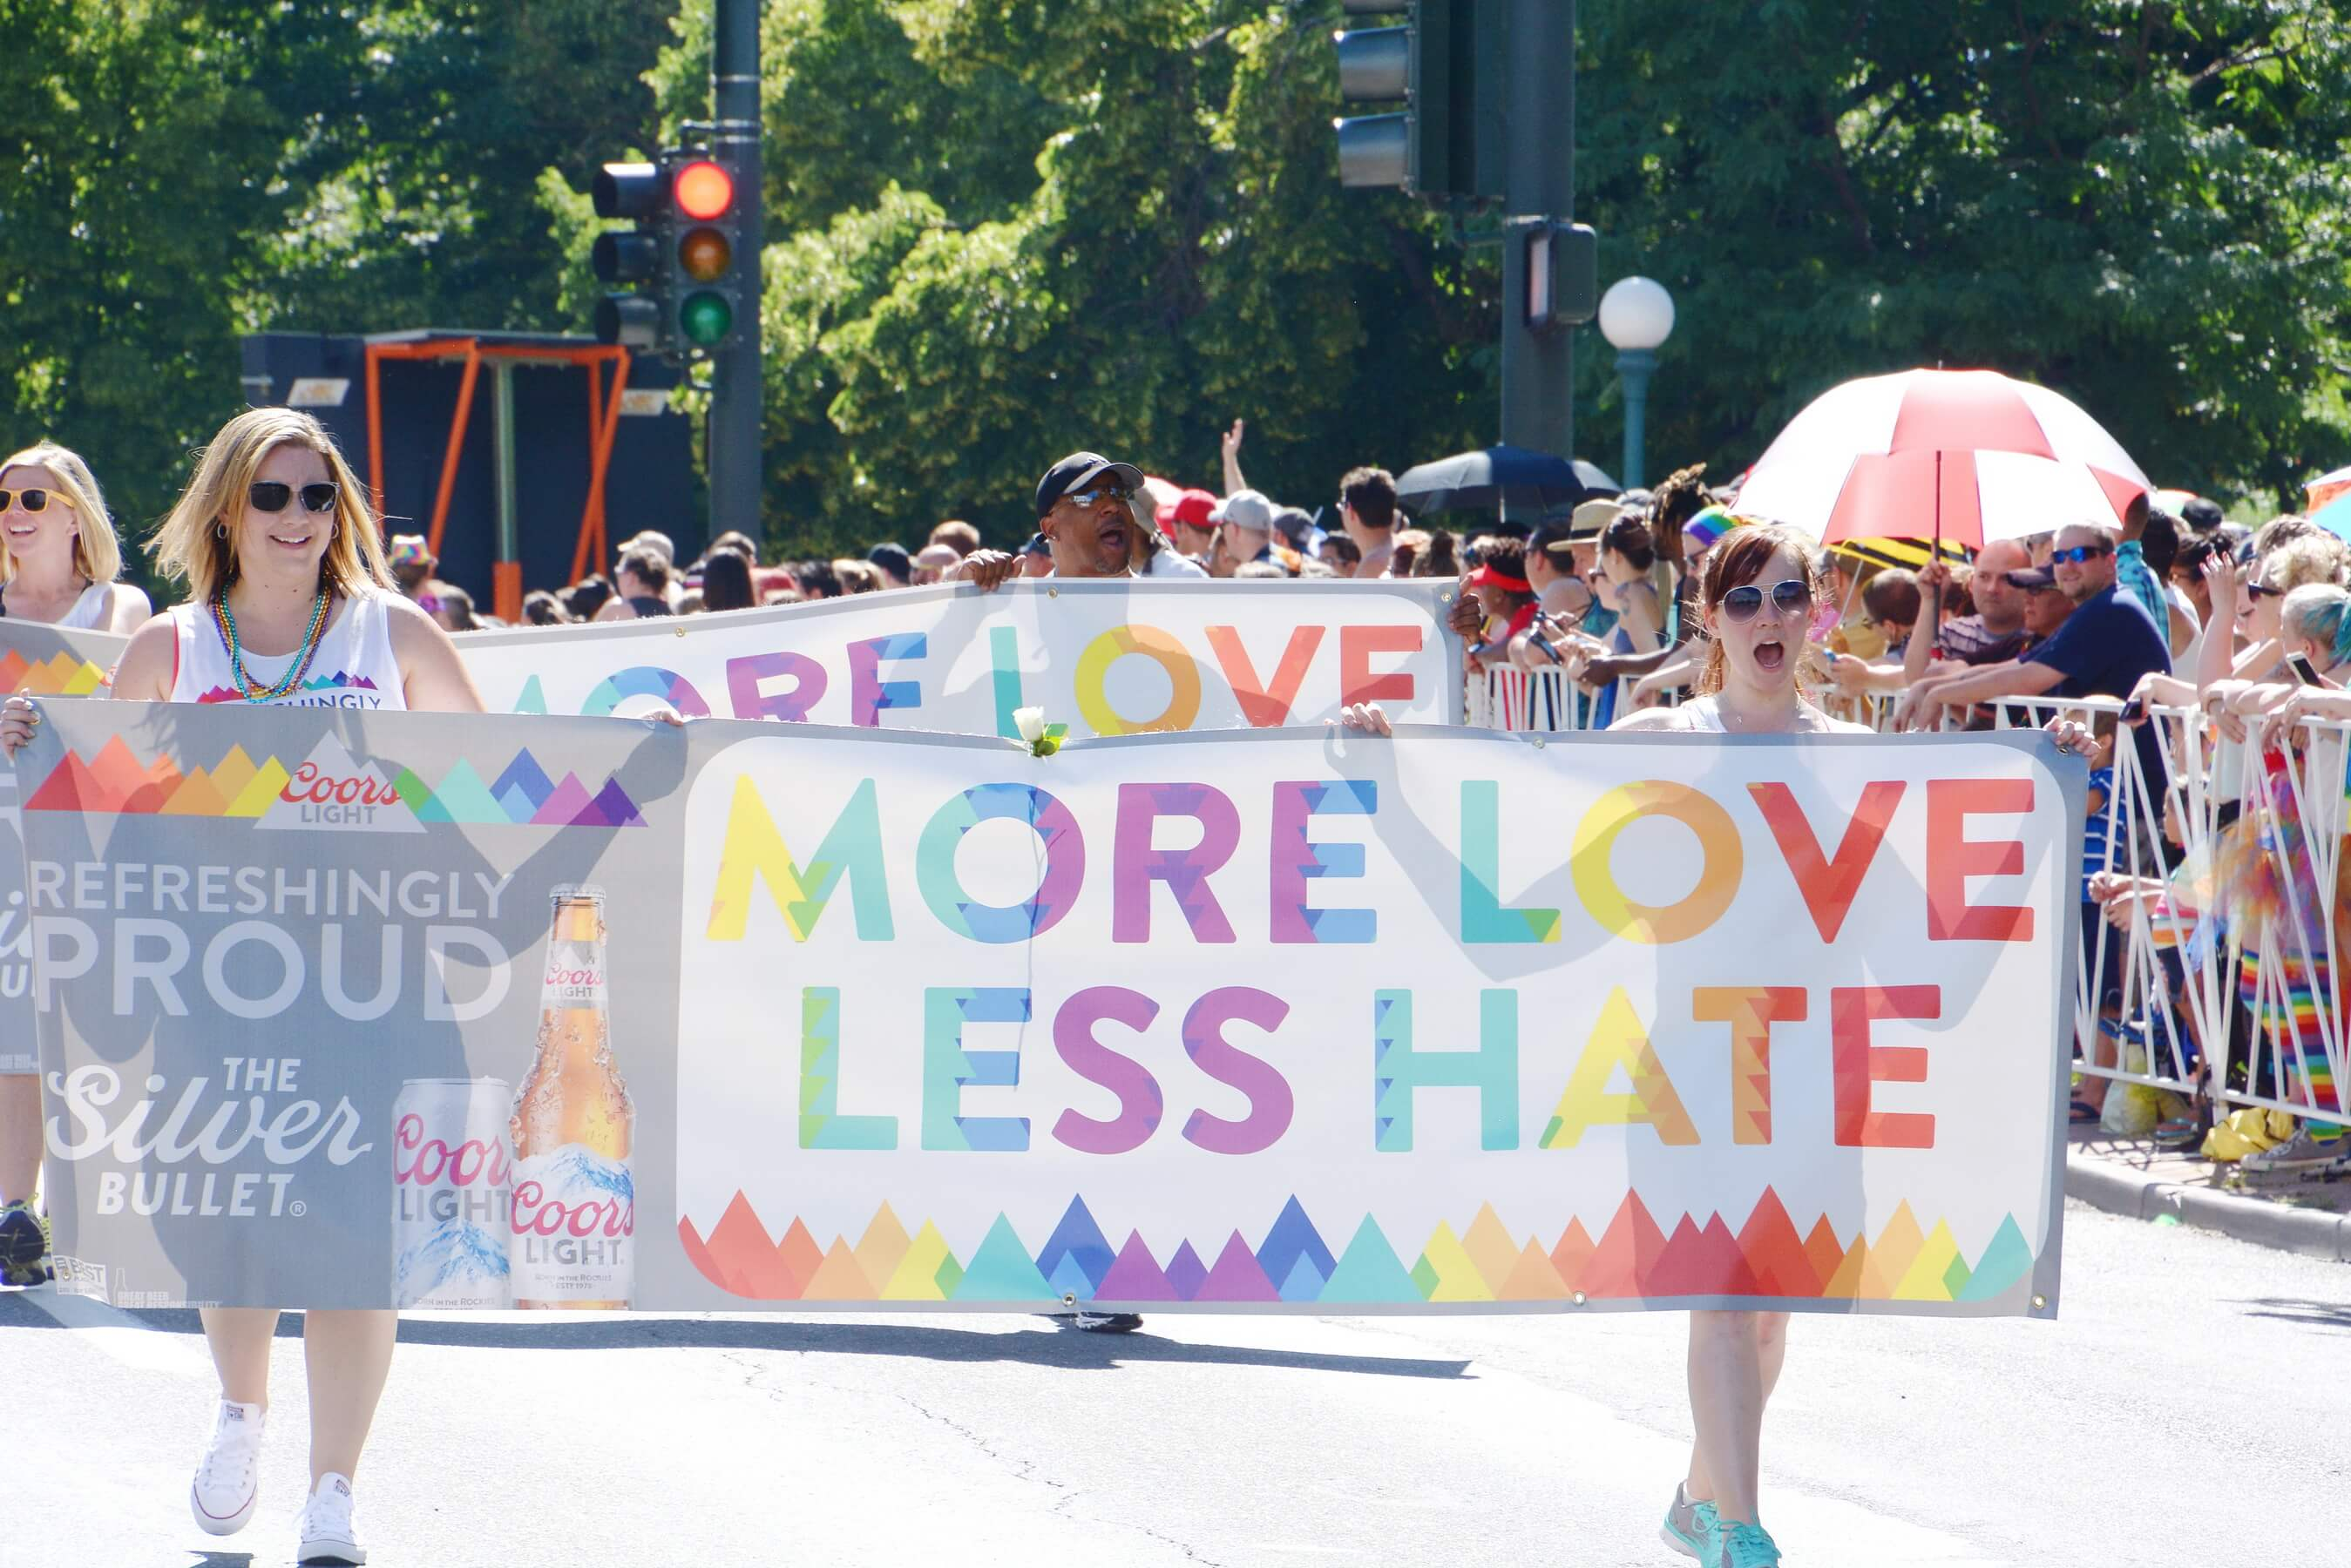 Coors Light - More Love Less Hate